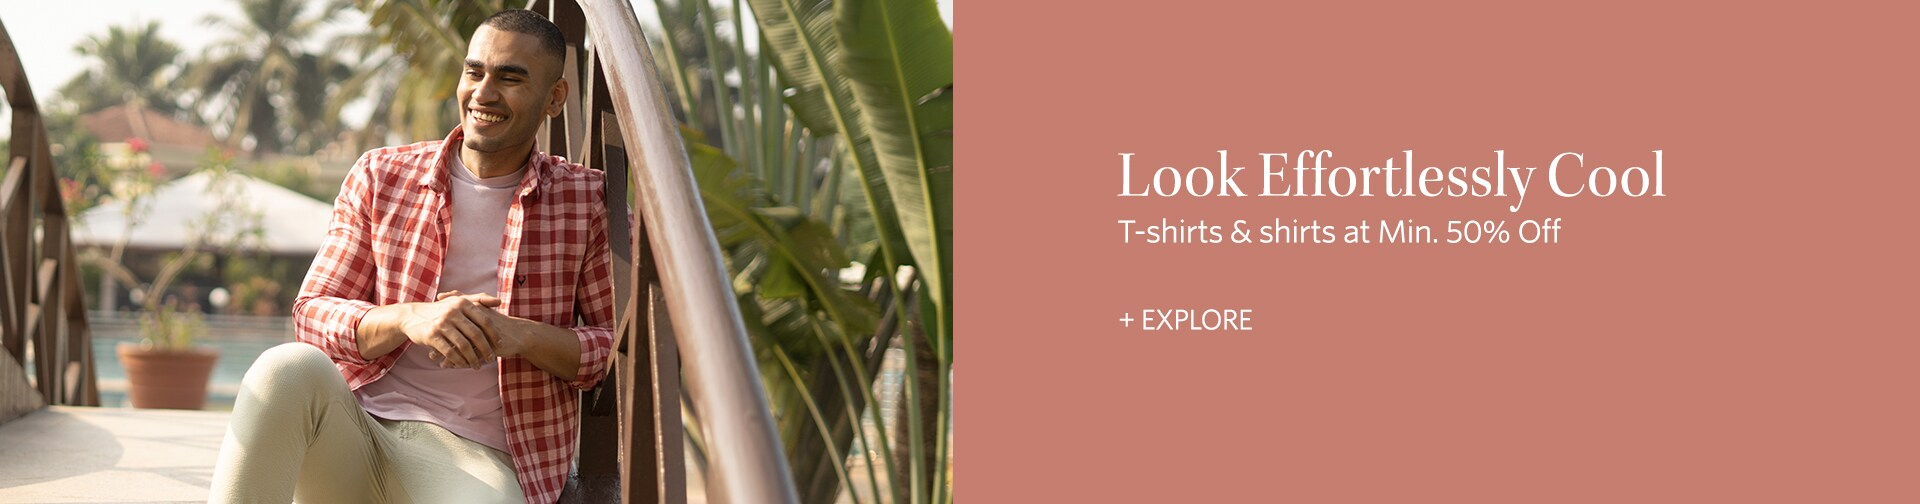 myntra.com - Avail 50% off on Men's Shirts and T-shirts